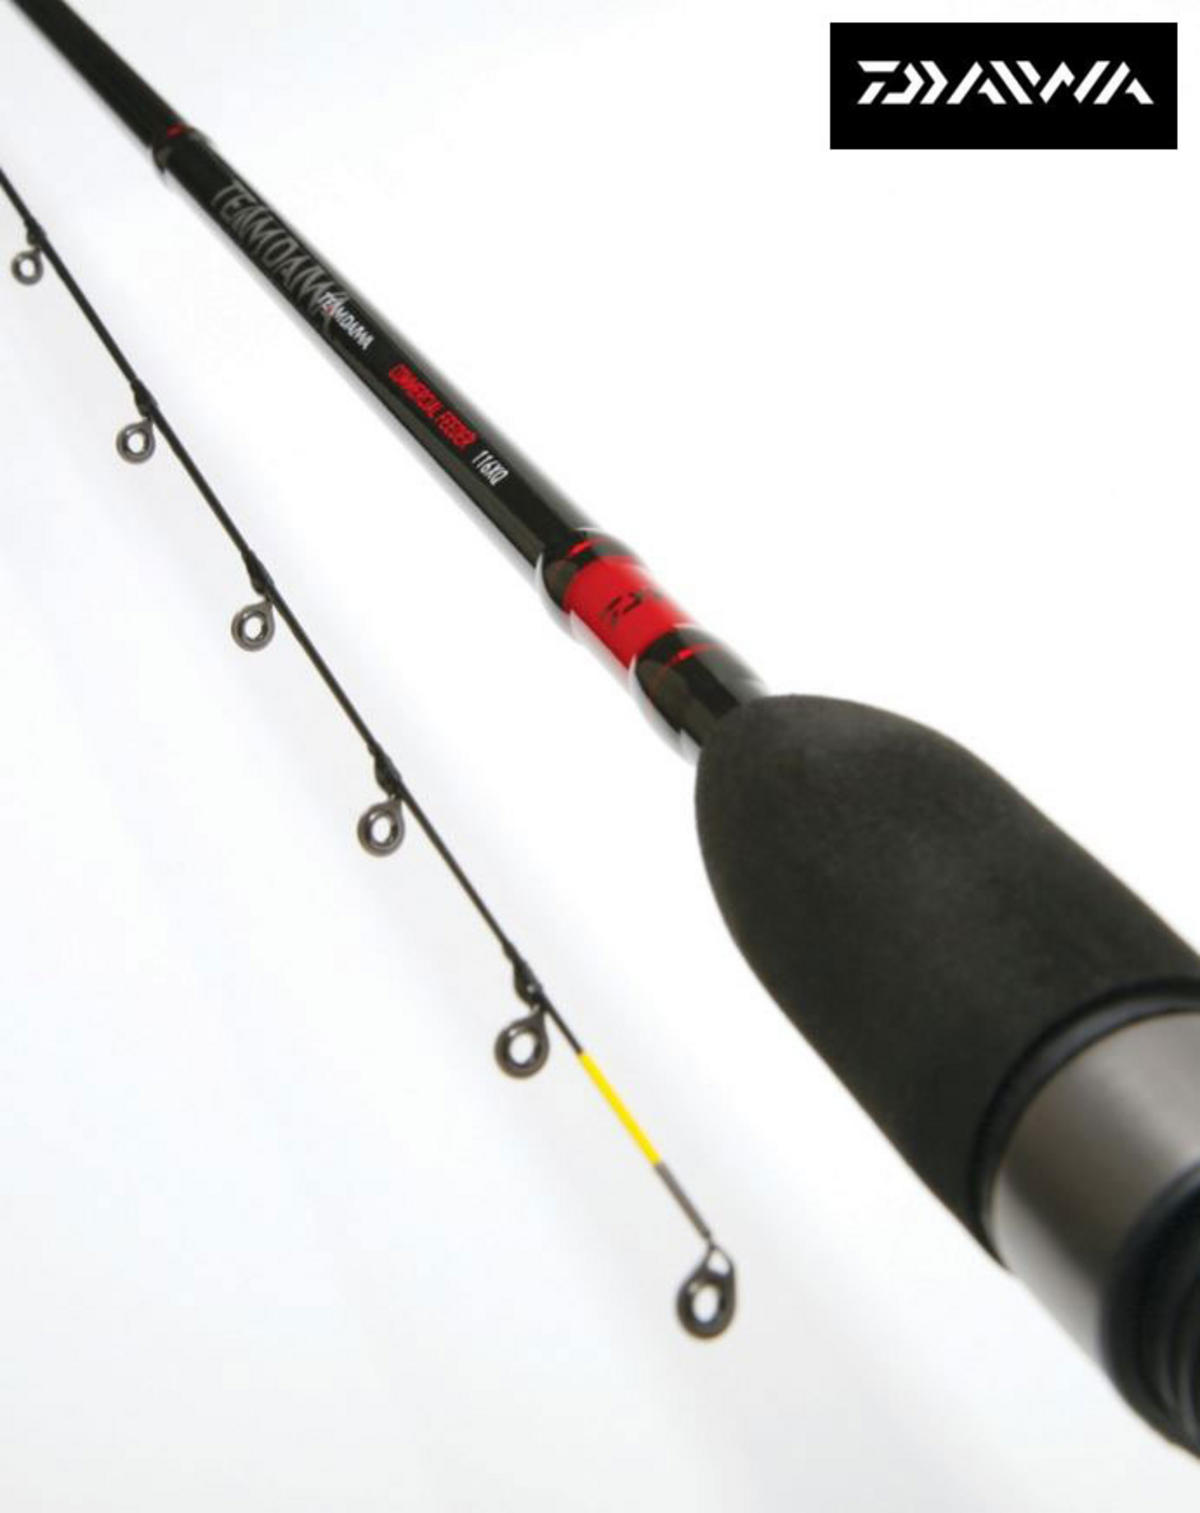 NEW TEAM DAIWA COMMERCIAL MATCH & FEEDER FISHING RODS ALL SIZES